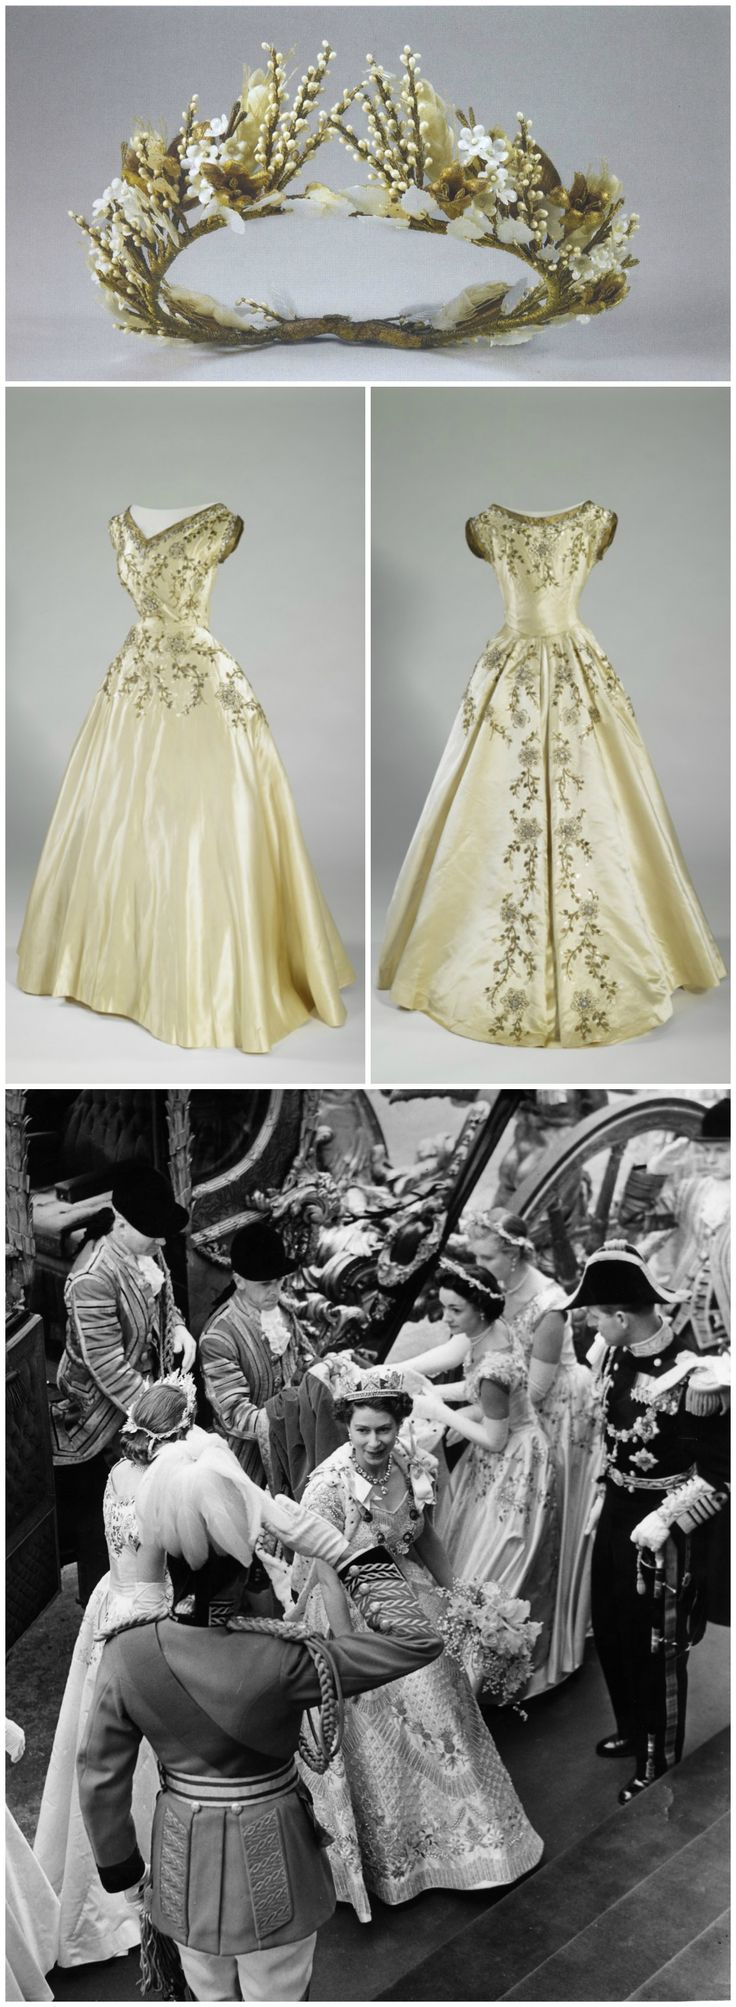 Six Maids of Honour attended on Queen Elizabeth II at the 1953 coronation. They wore cream silk satin dresses edged with gold tissue with embroidery designs of trailing flowers and foliage. Designer Norman Hartnell planned for the embroidery to cascade down the backs of the skirts, because the gowns of the Maids of Honour would be visible from all sides, particularly the back, as they carried the Queen's robes down the aisle of Westminster Abbey. Their headdresses were also designed by…